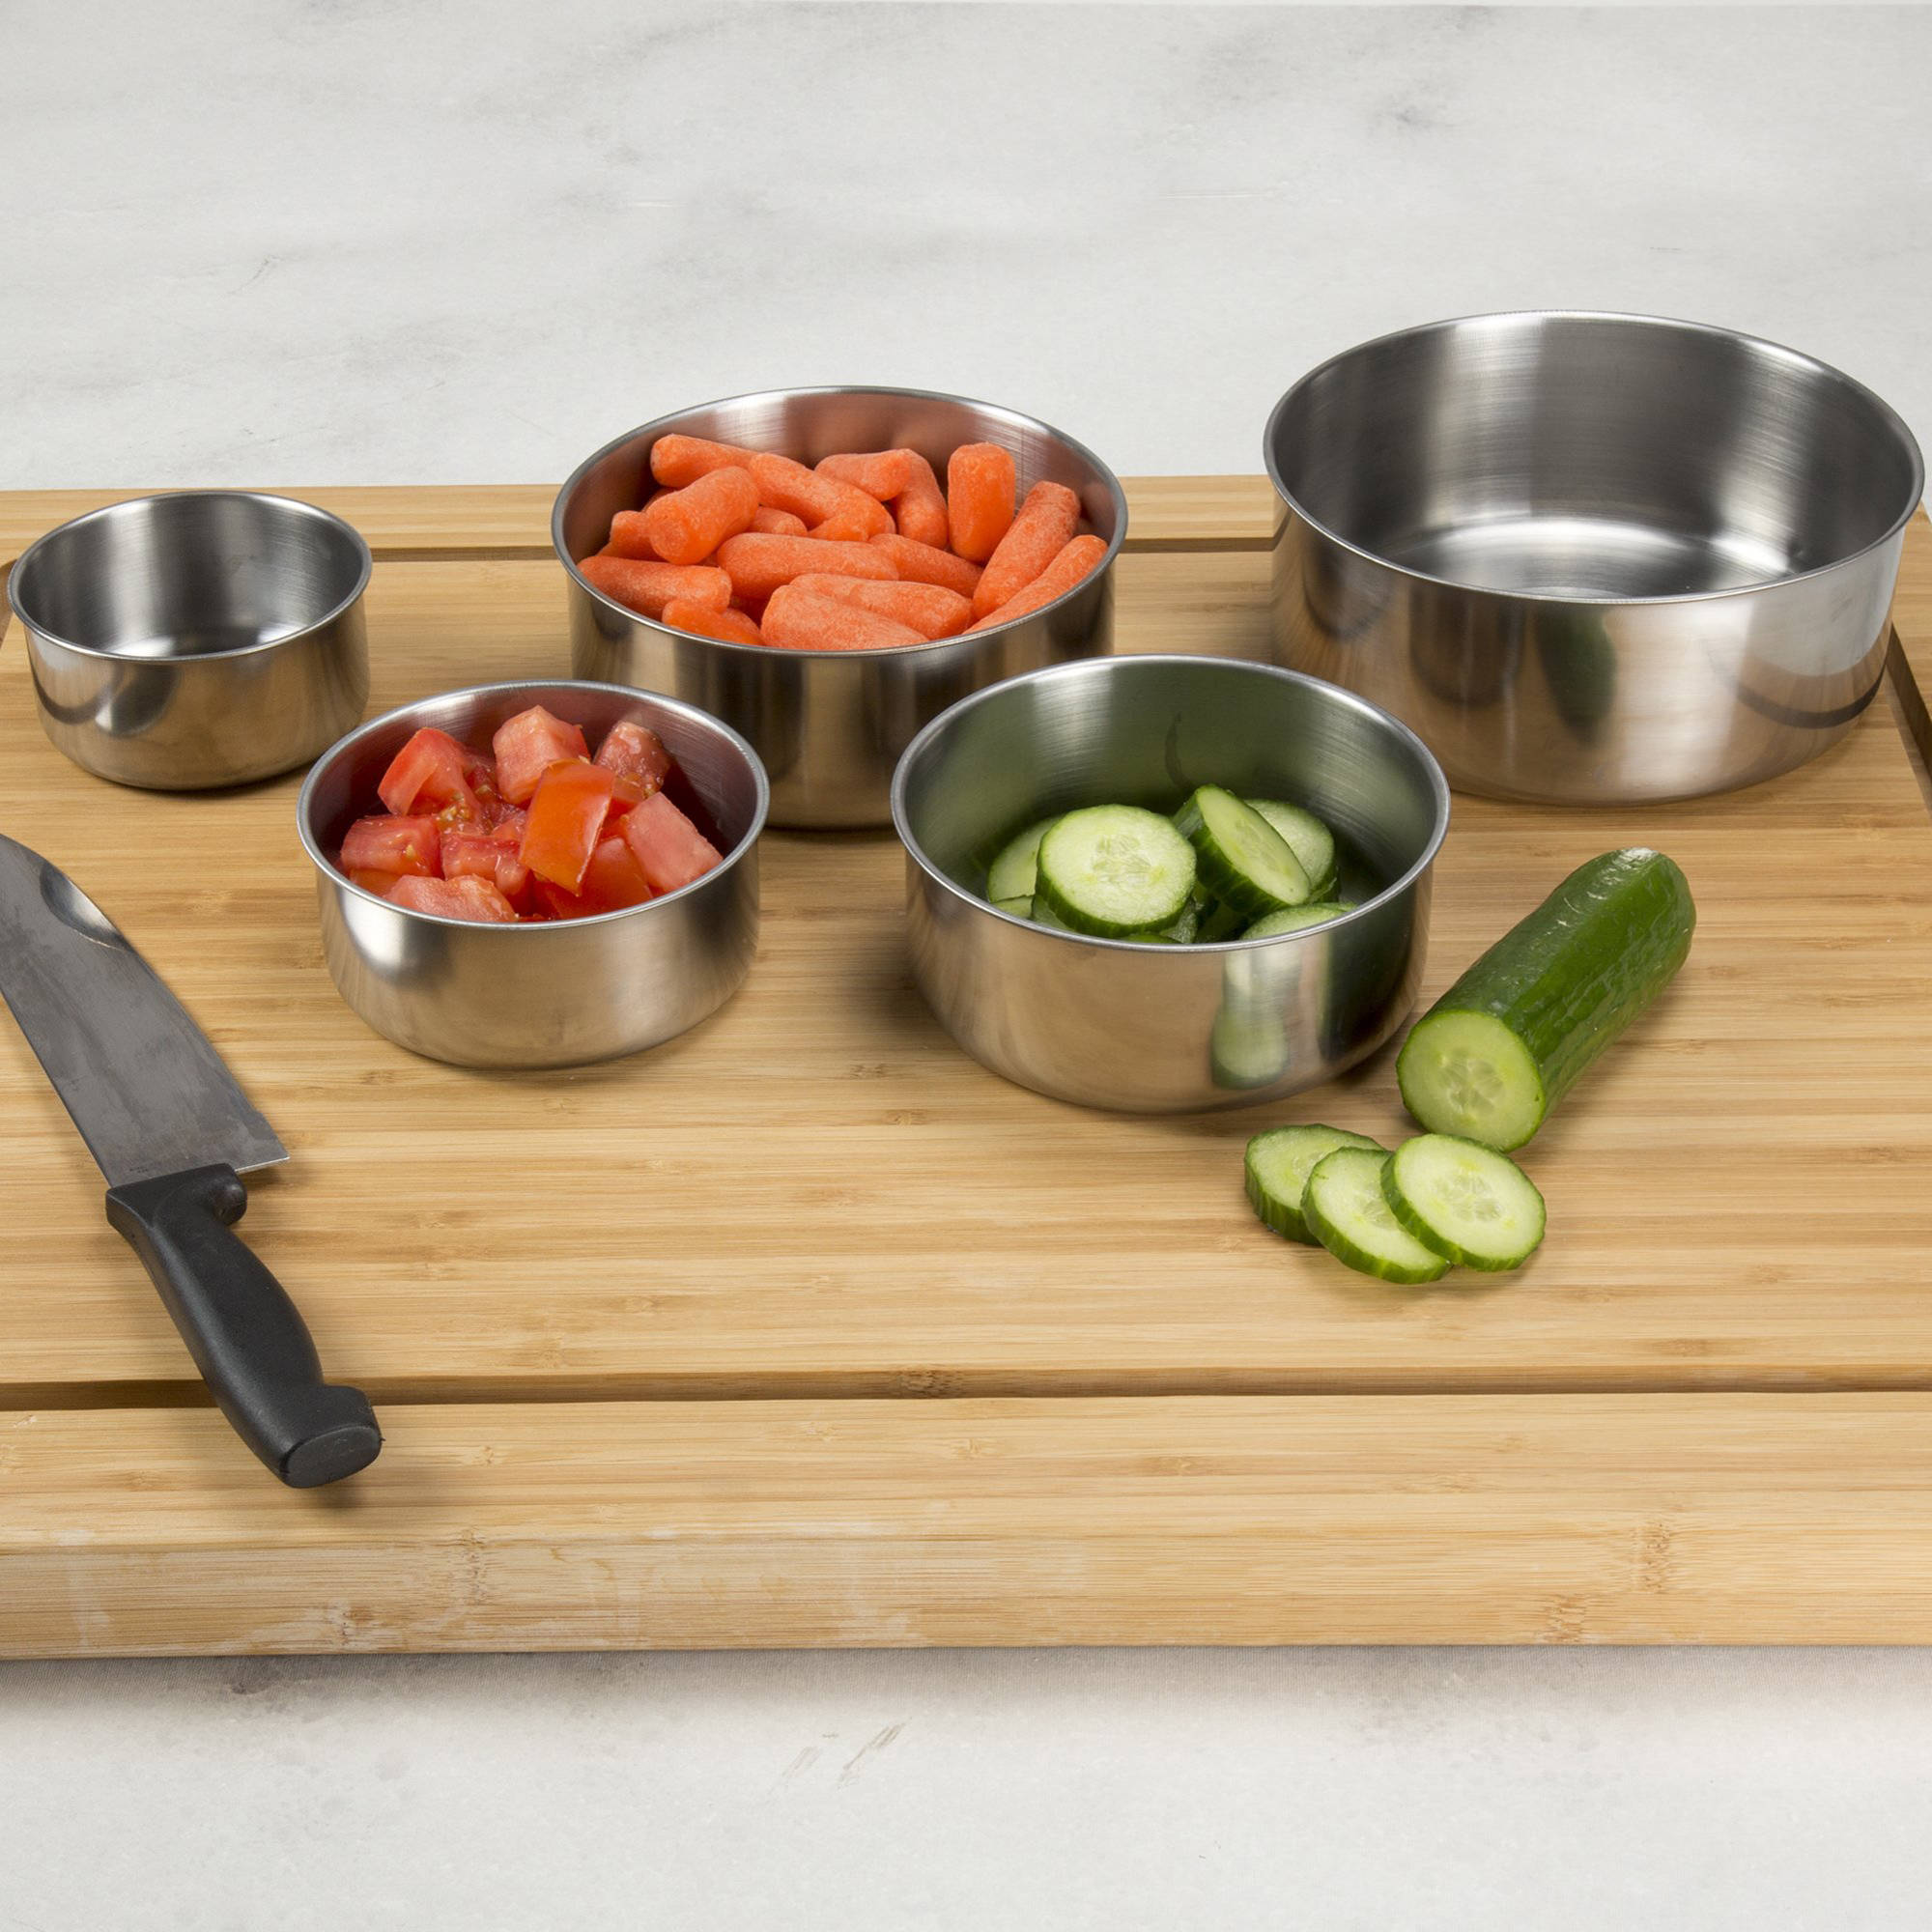 Chef Buddy 5-Piece Stainless Steel Bowl Set with Lids